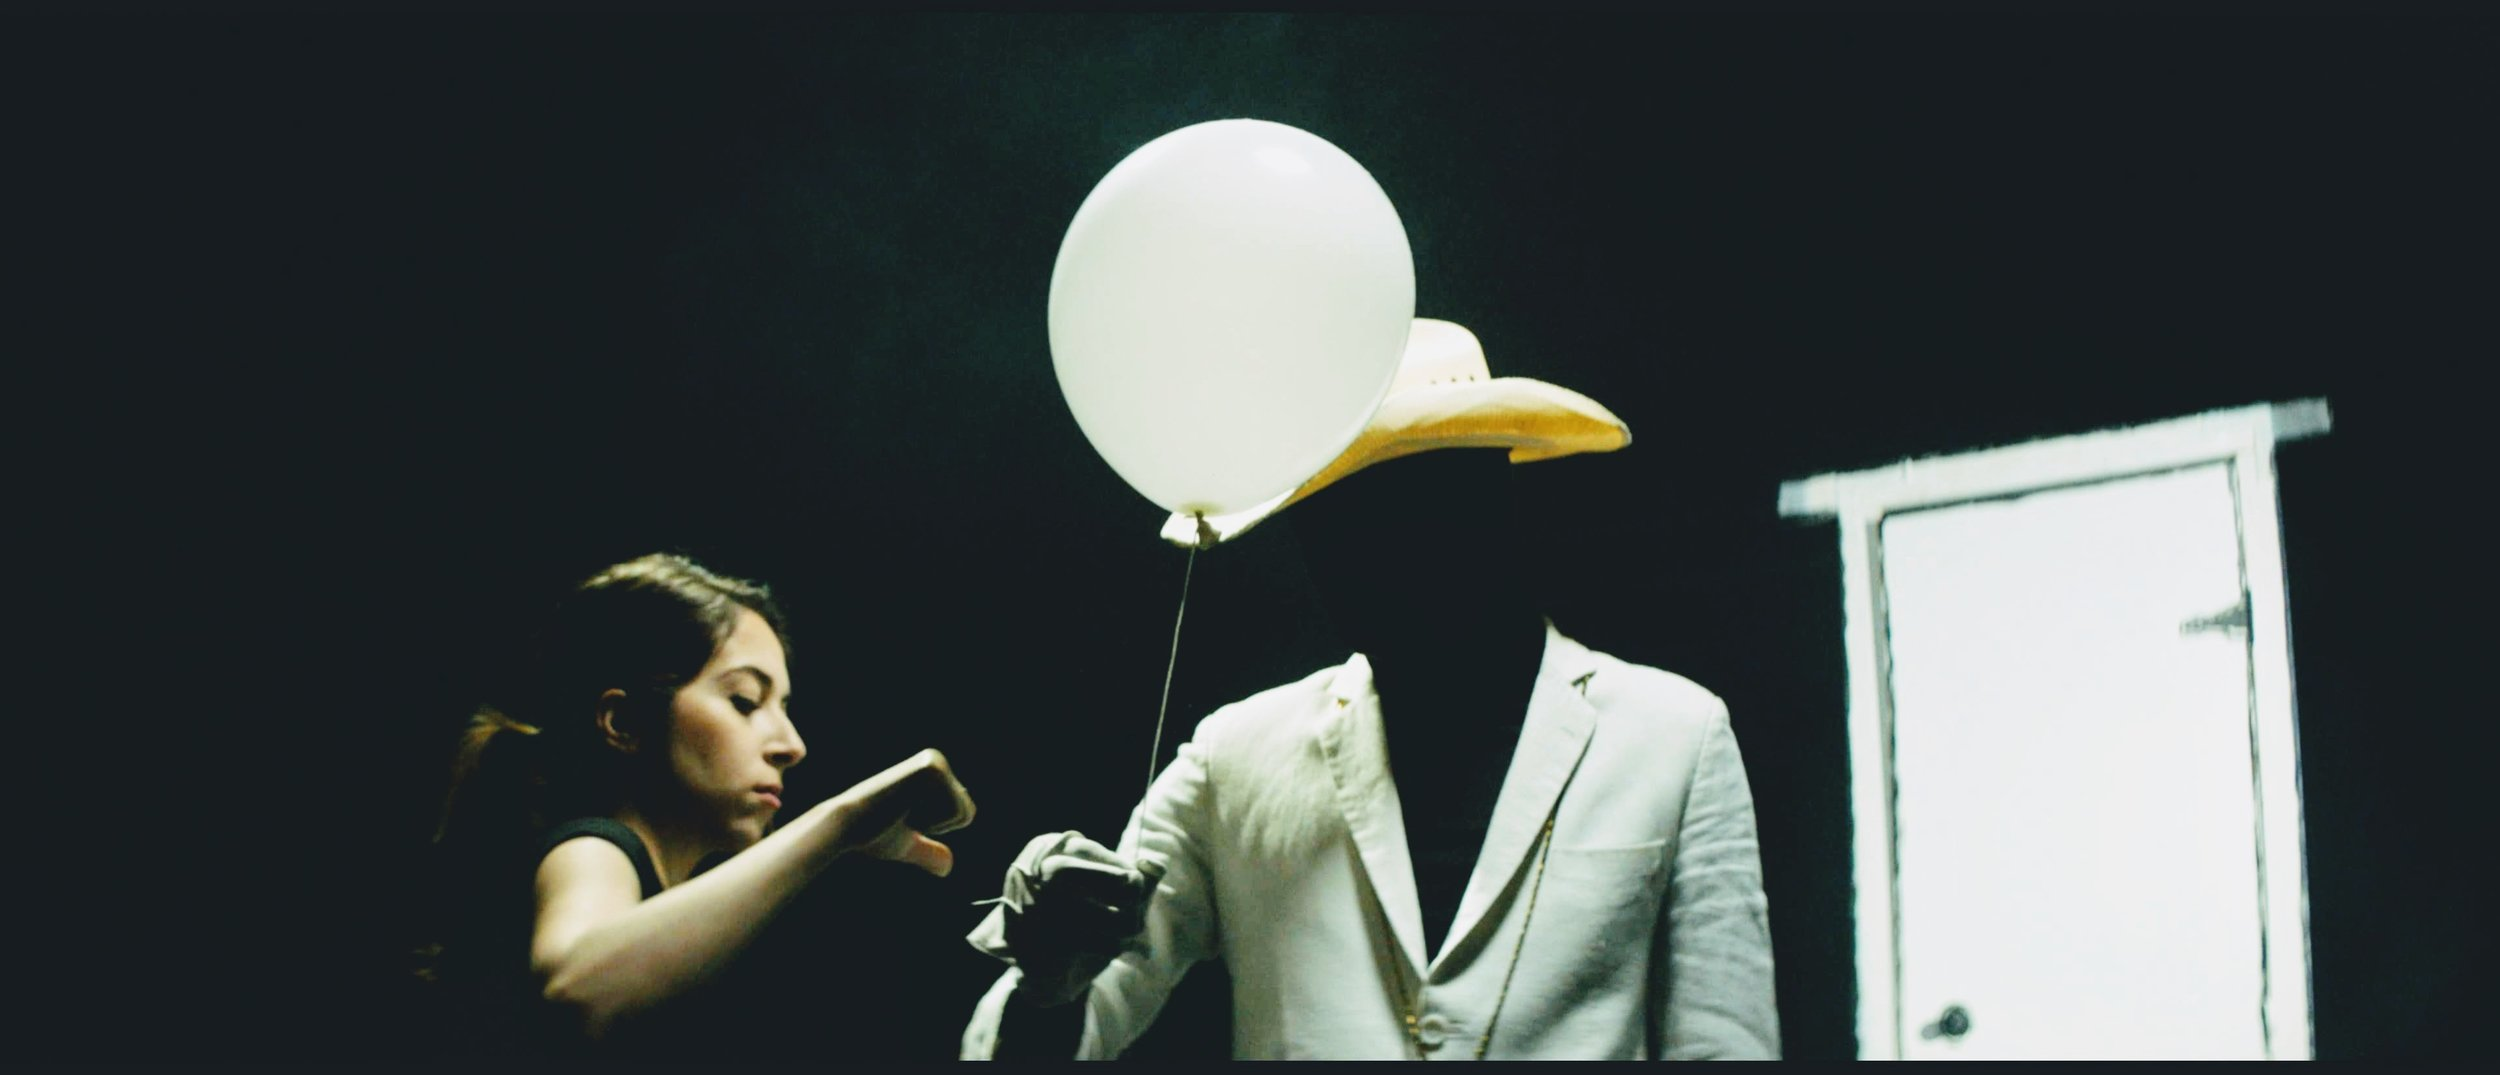 Golzar on set in art department for a music video (2019)